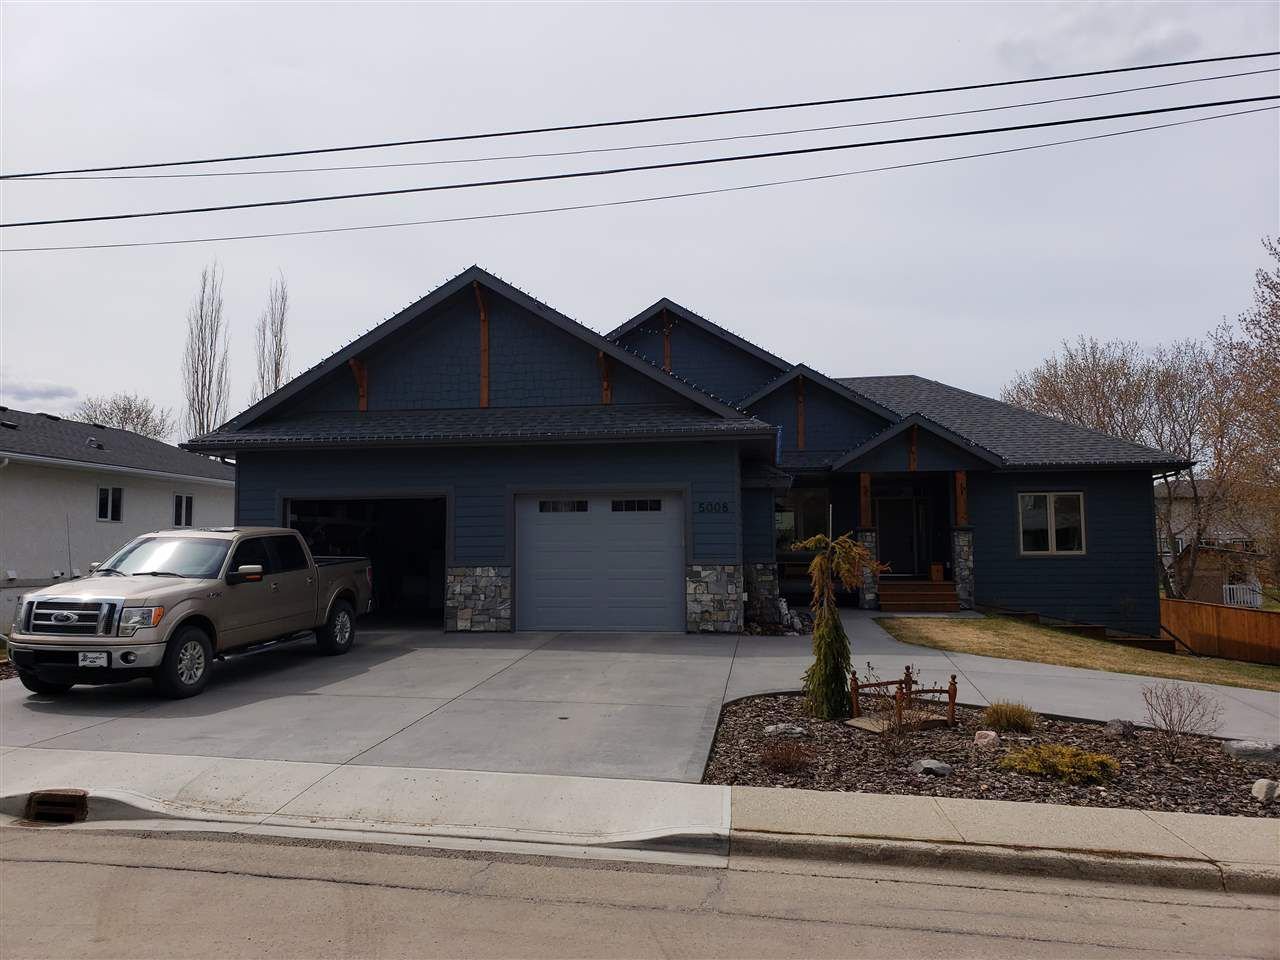 Main Photo: 5008 52 Street: Stony Plain House for sale : MLS®# E4157279